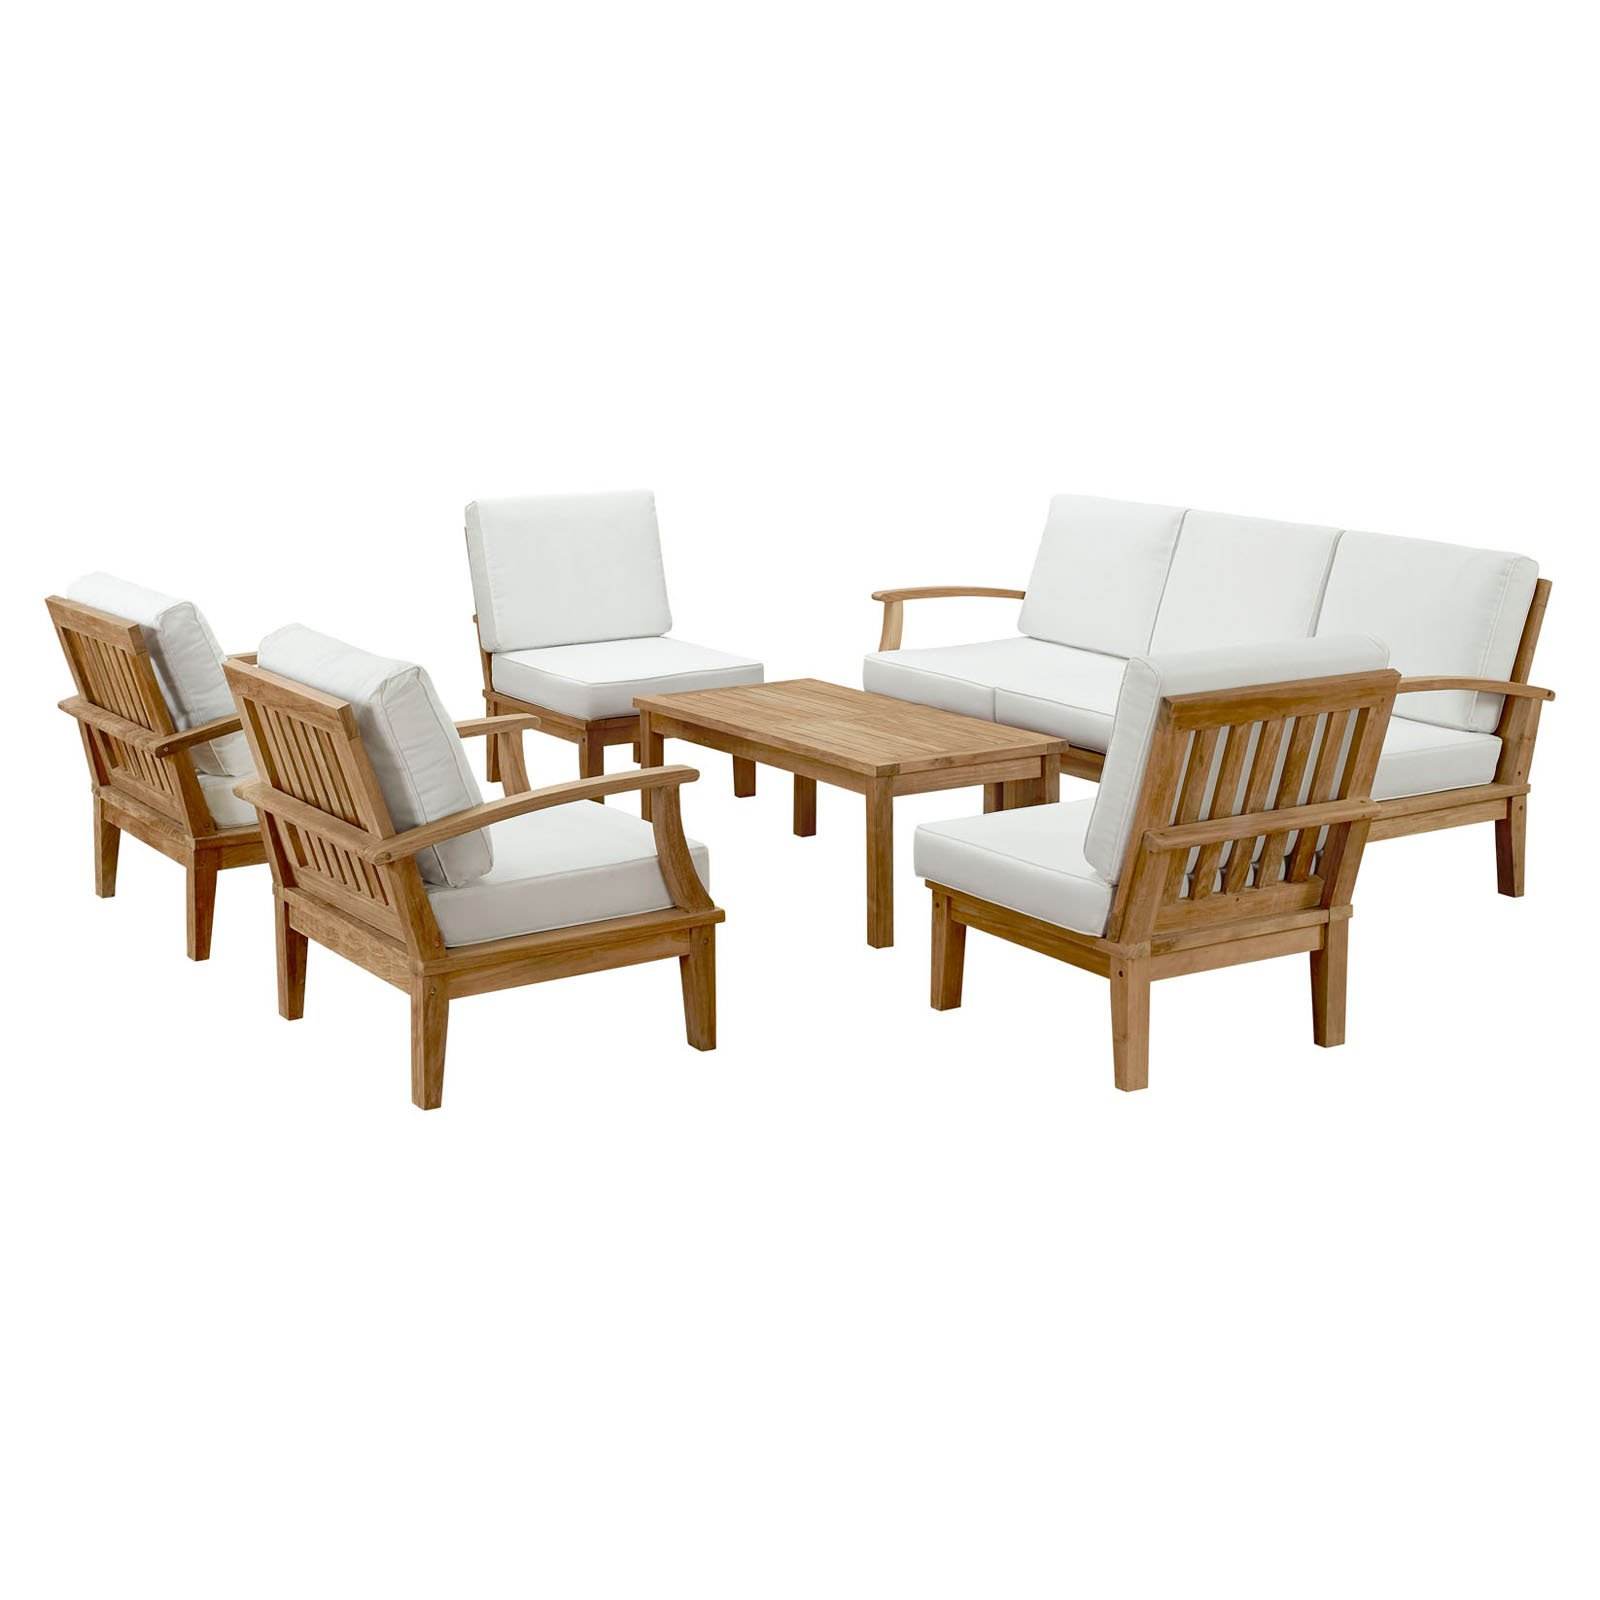 Modway Marina 8 Piece Outdoor Patio Teak Sofa Set in Natural White by Modway